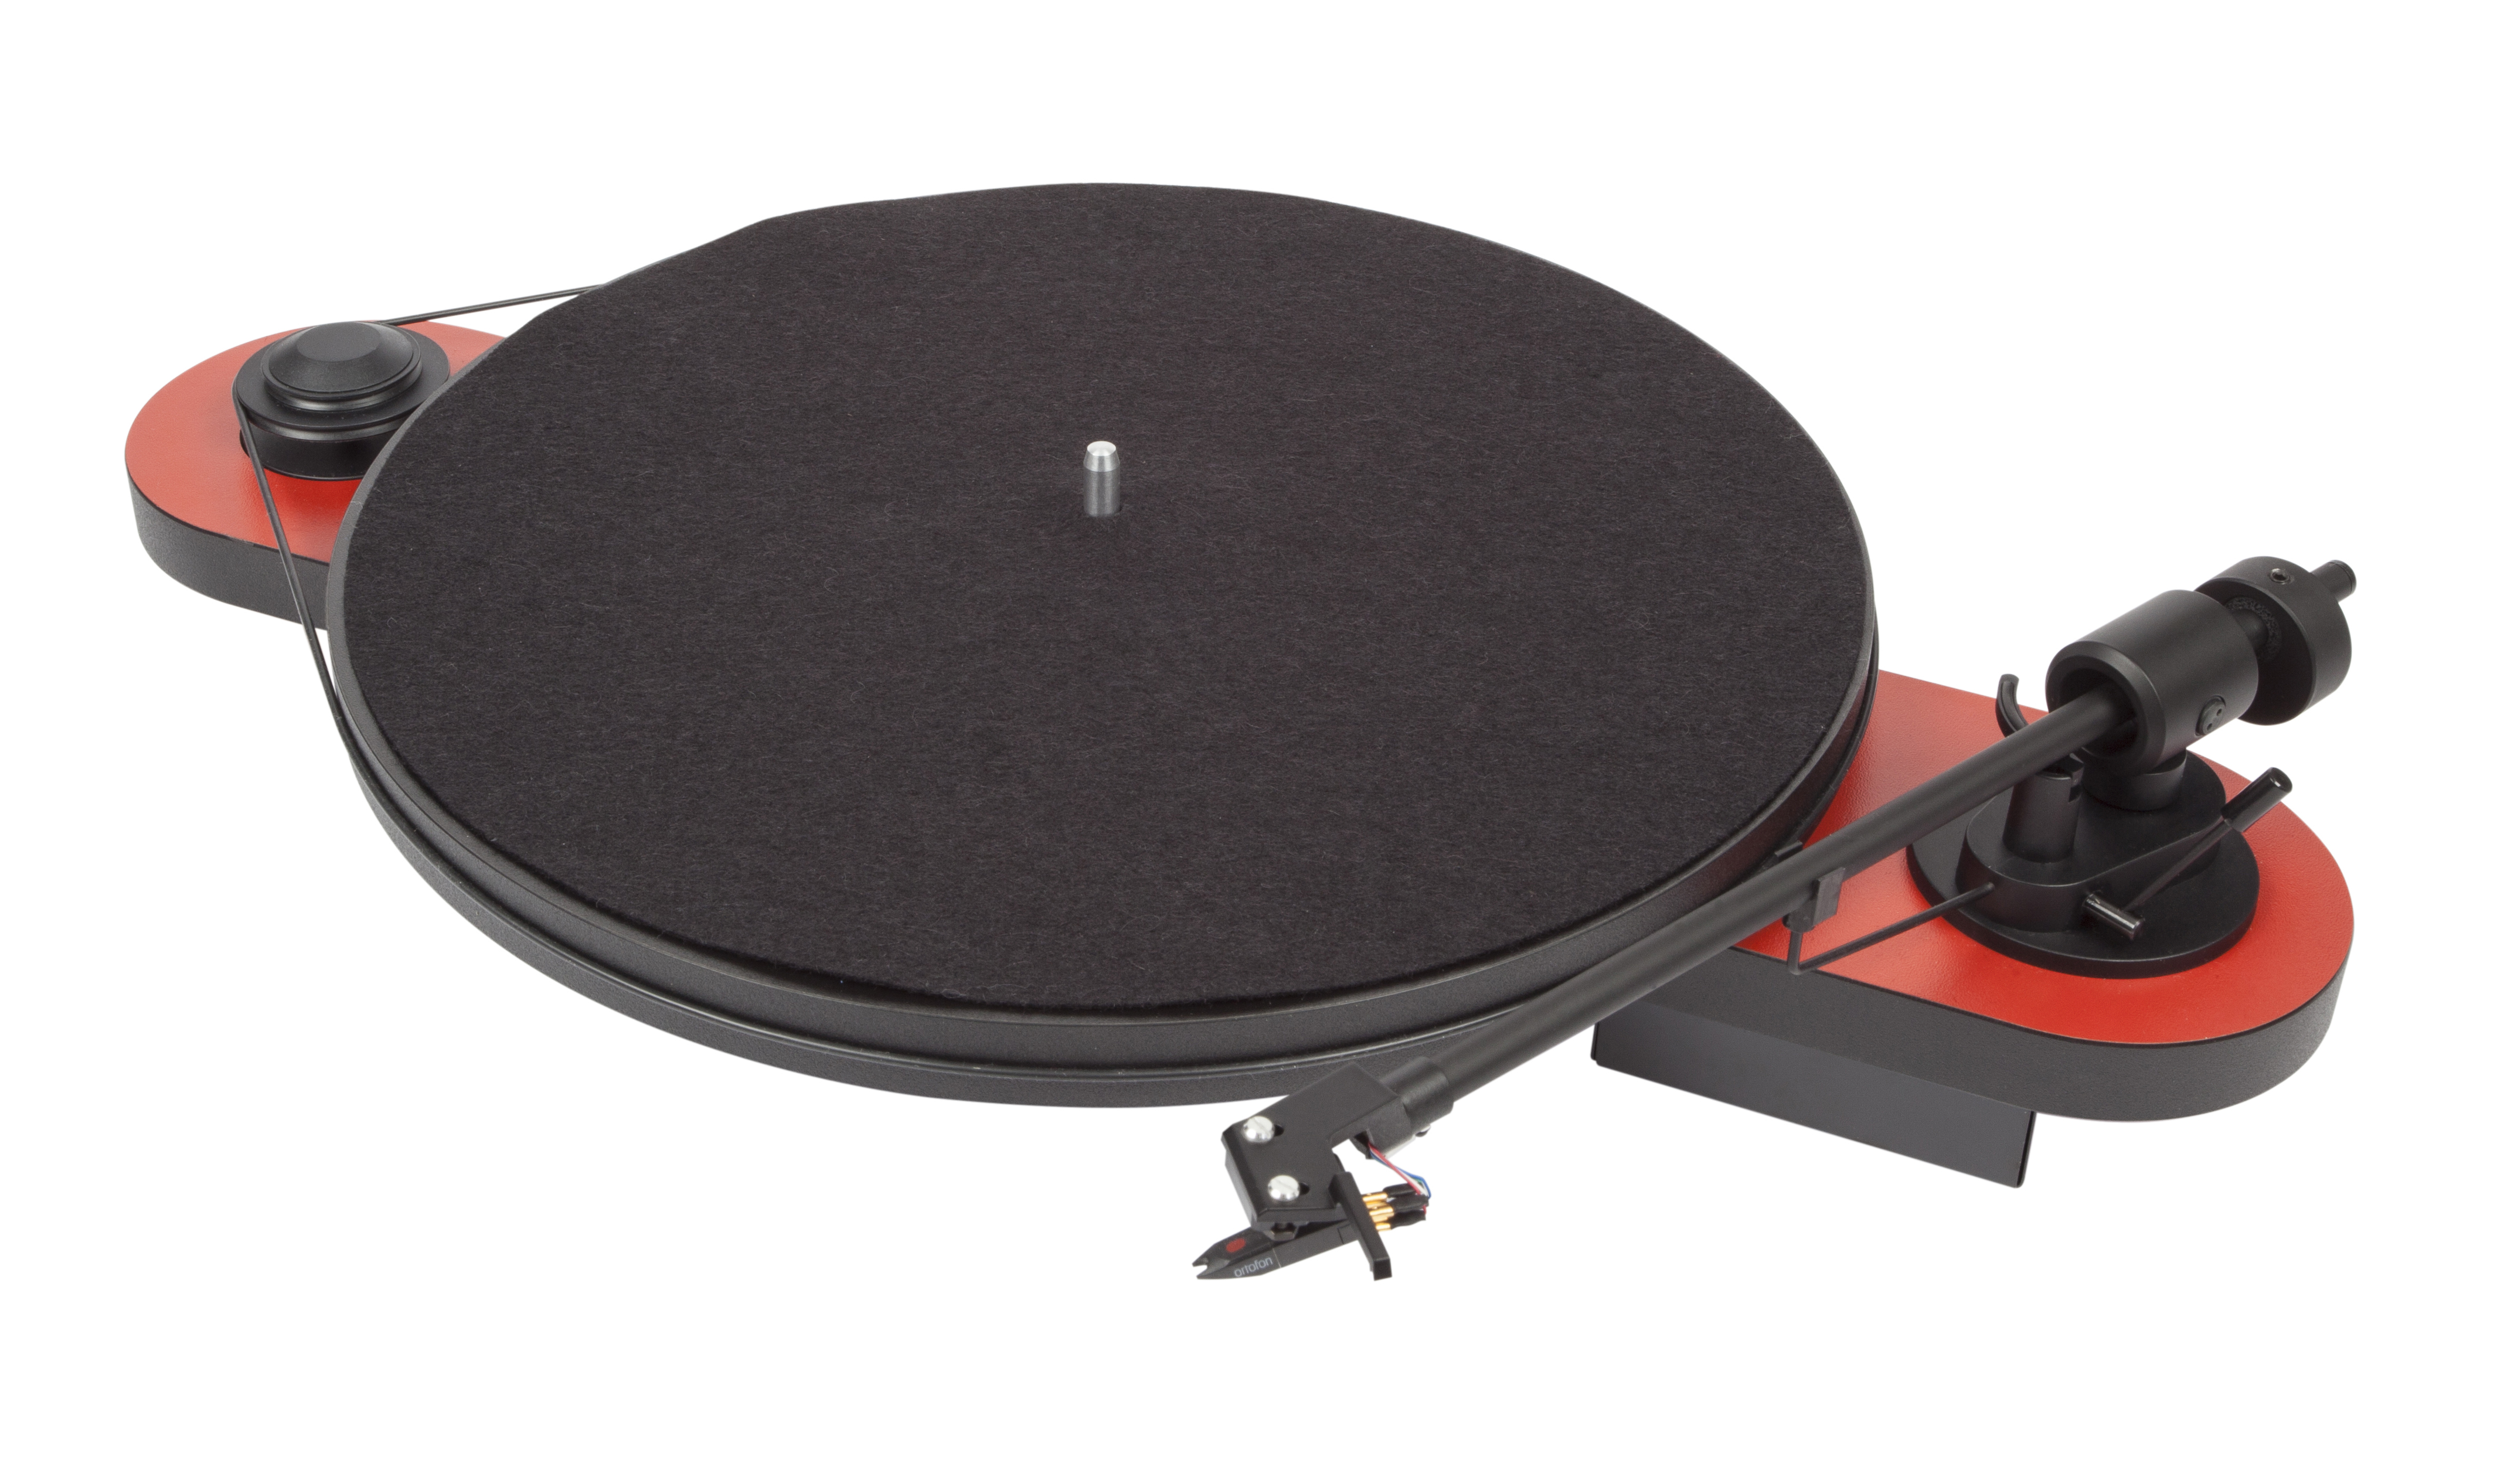 project turntables All about pro-ject turntables from your analogue specialist, totally wired a wide range of turntable, accessories and expert advice available pro–ject turntables continue their rapid evolution and refinement.